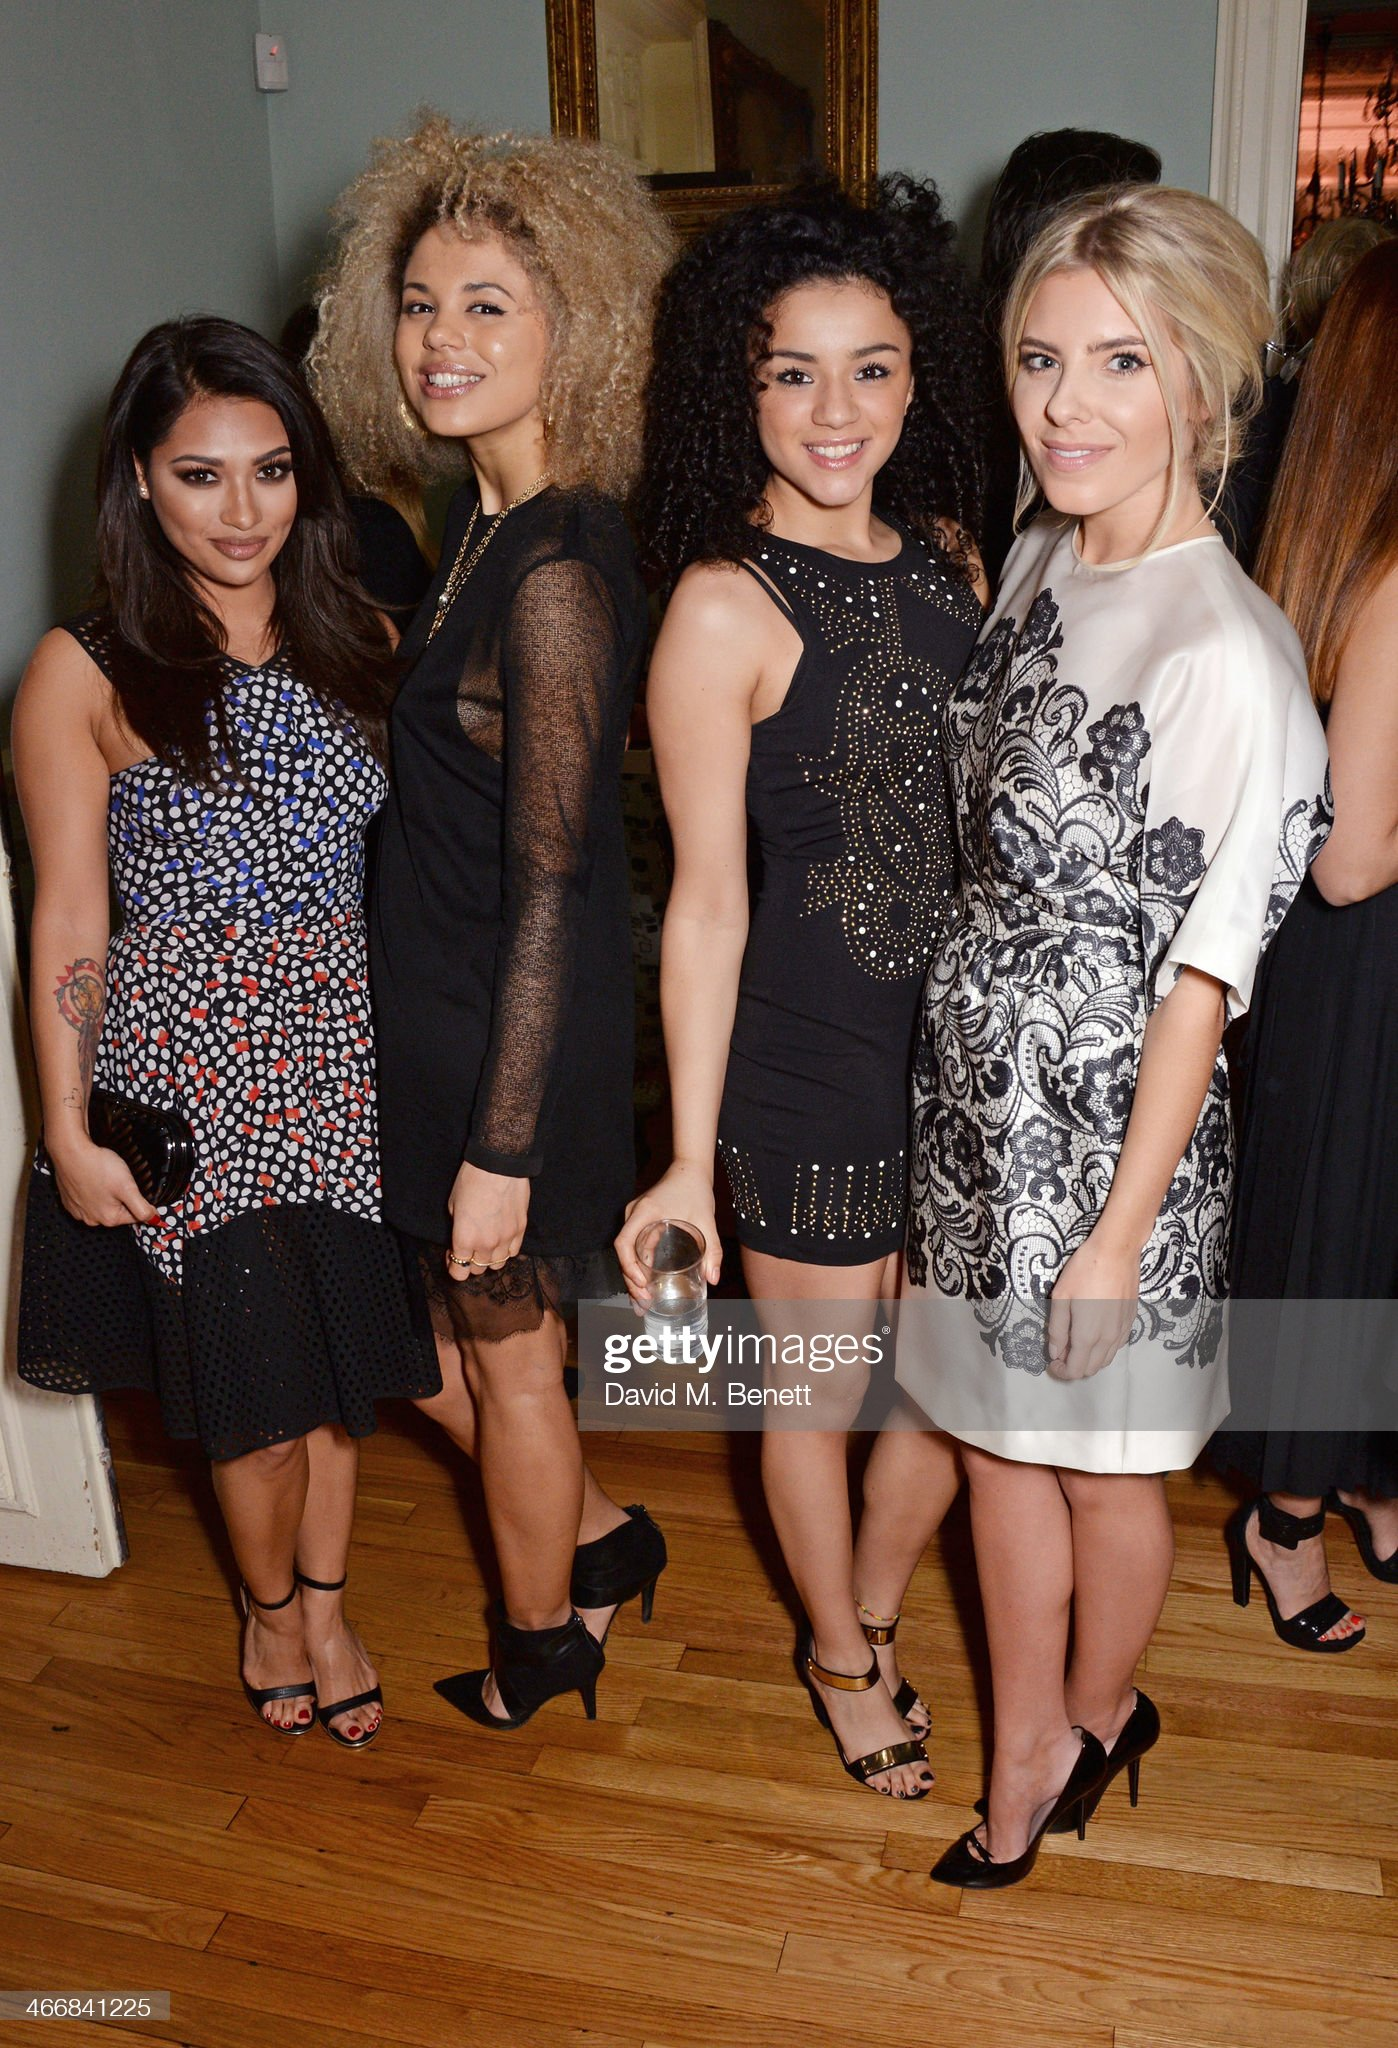 ¿Cuánto mide Mollie King? - Altura - Real height Vanessa-white-jess-plummer-shereen-cutkelvin-and-mollie-king-attend-picture-id466841225?s=2048x2048